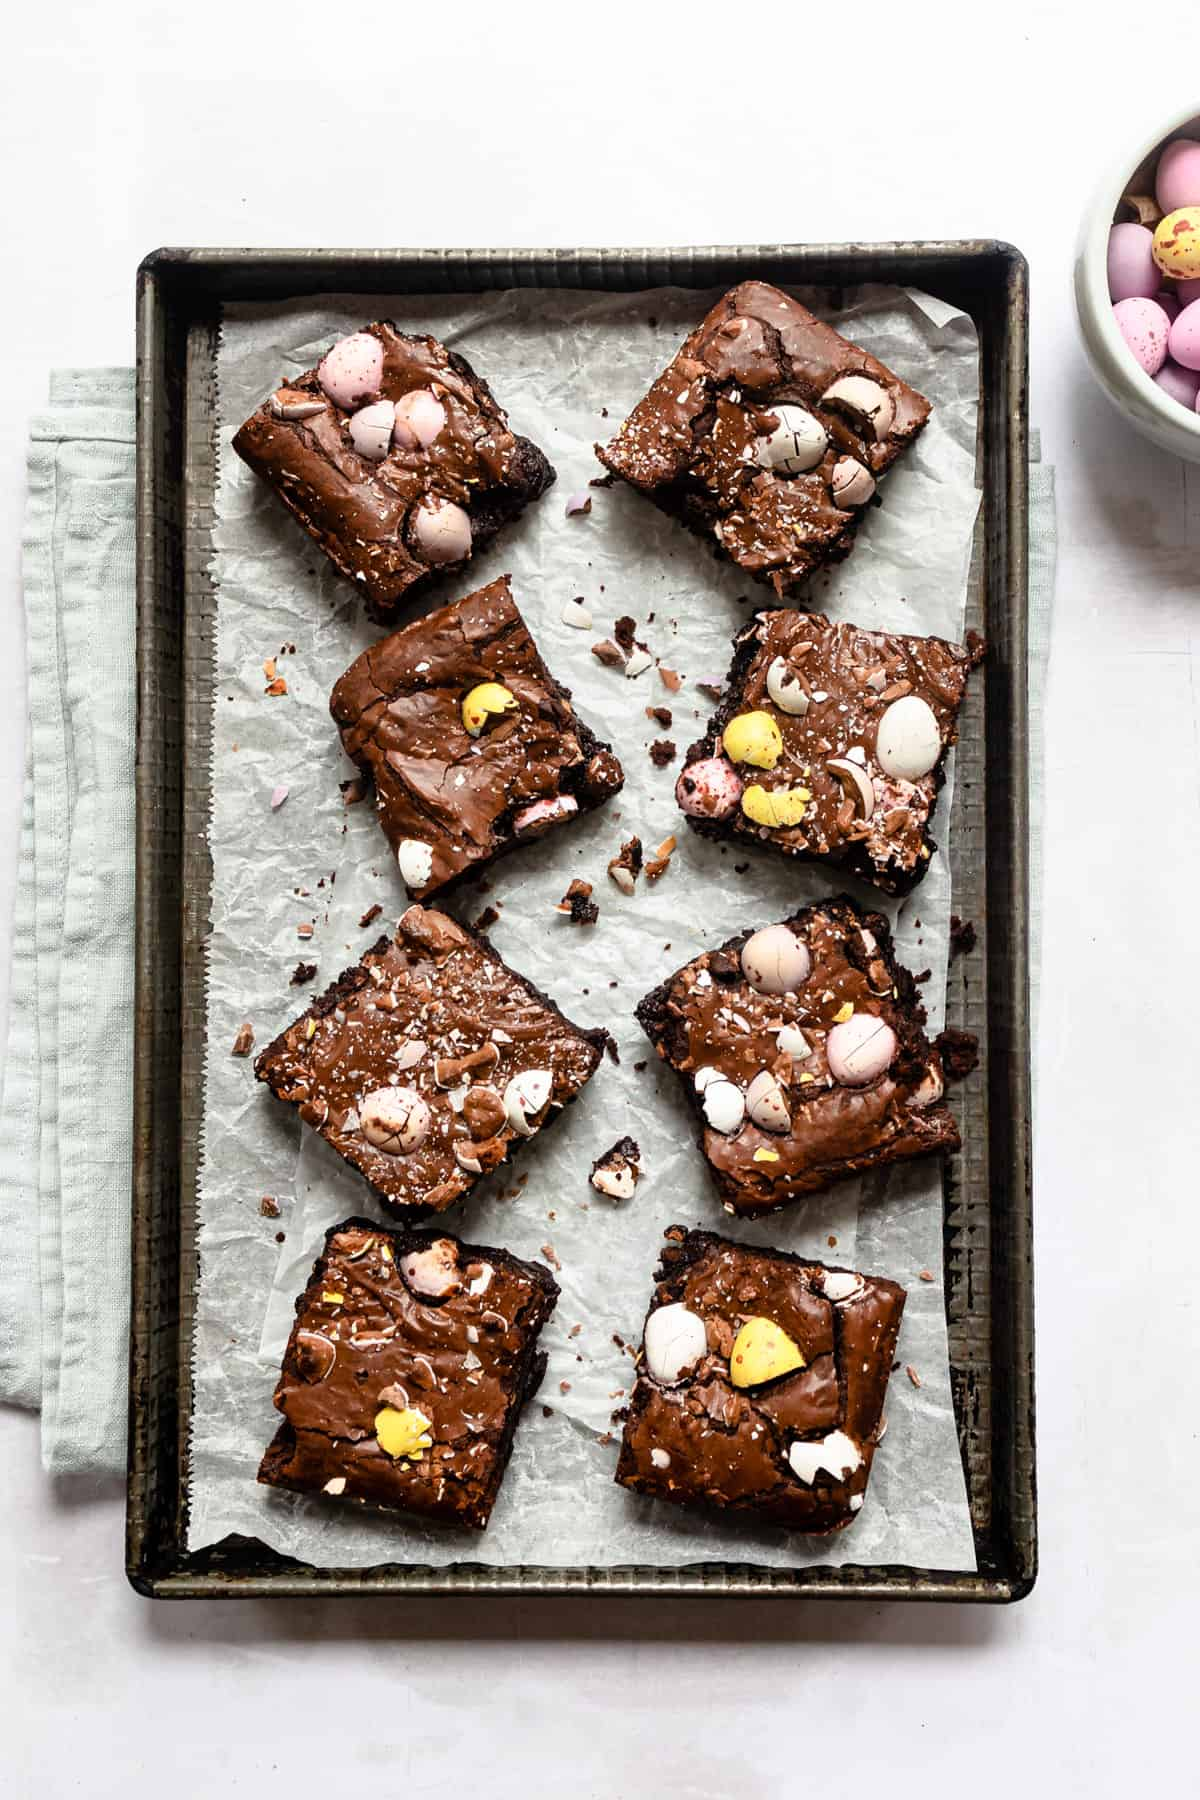 mini egg brownies on a baking tray